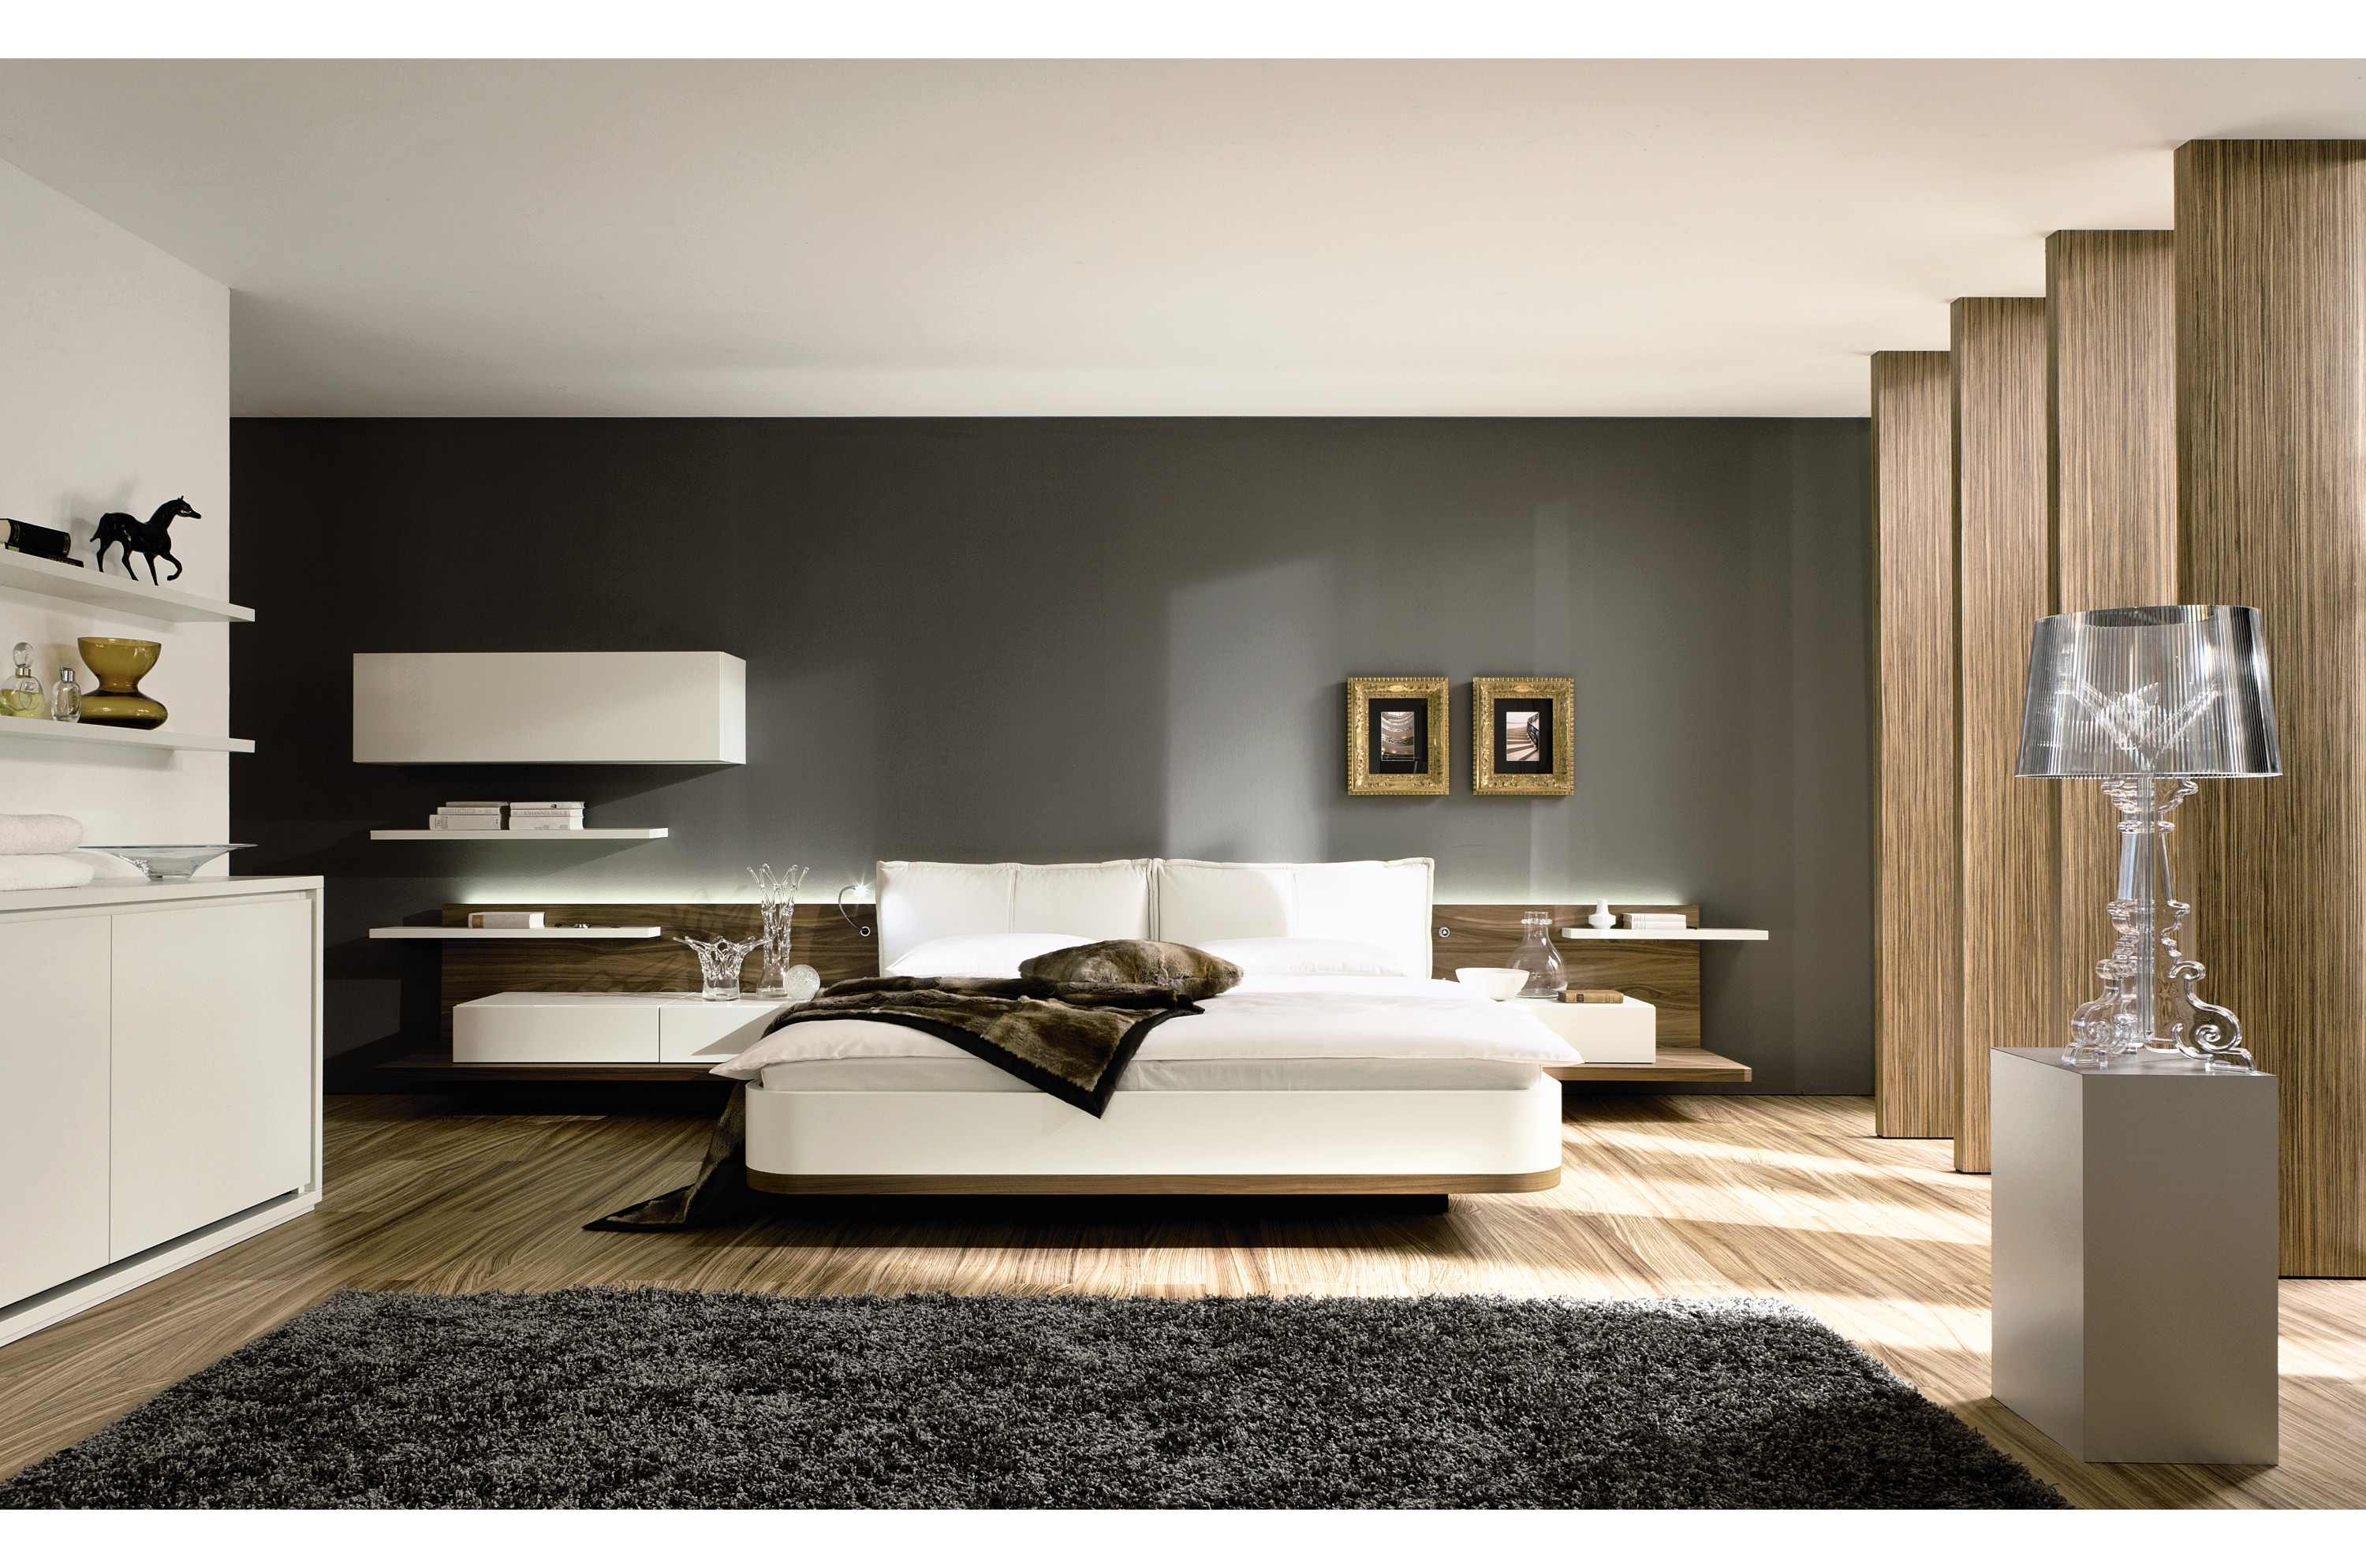 Modern bedroom innovation bedroom ideas interior design Photos of bedroom designs